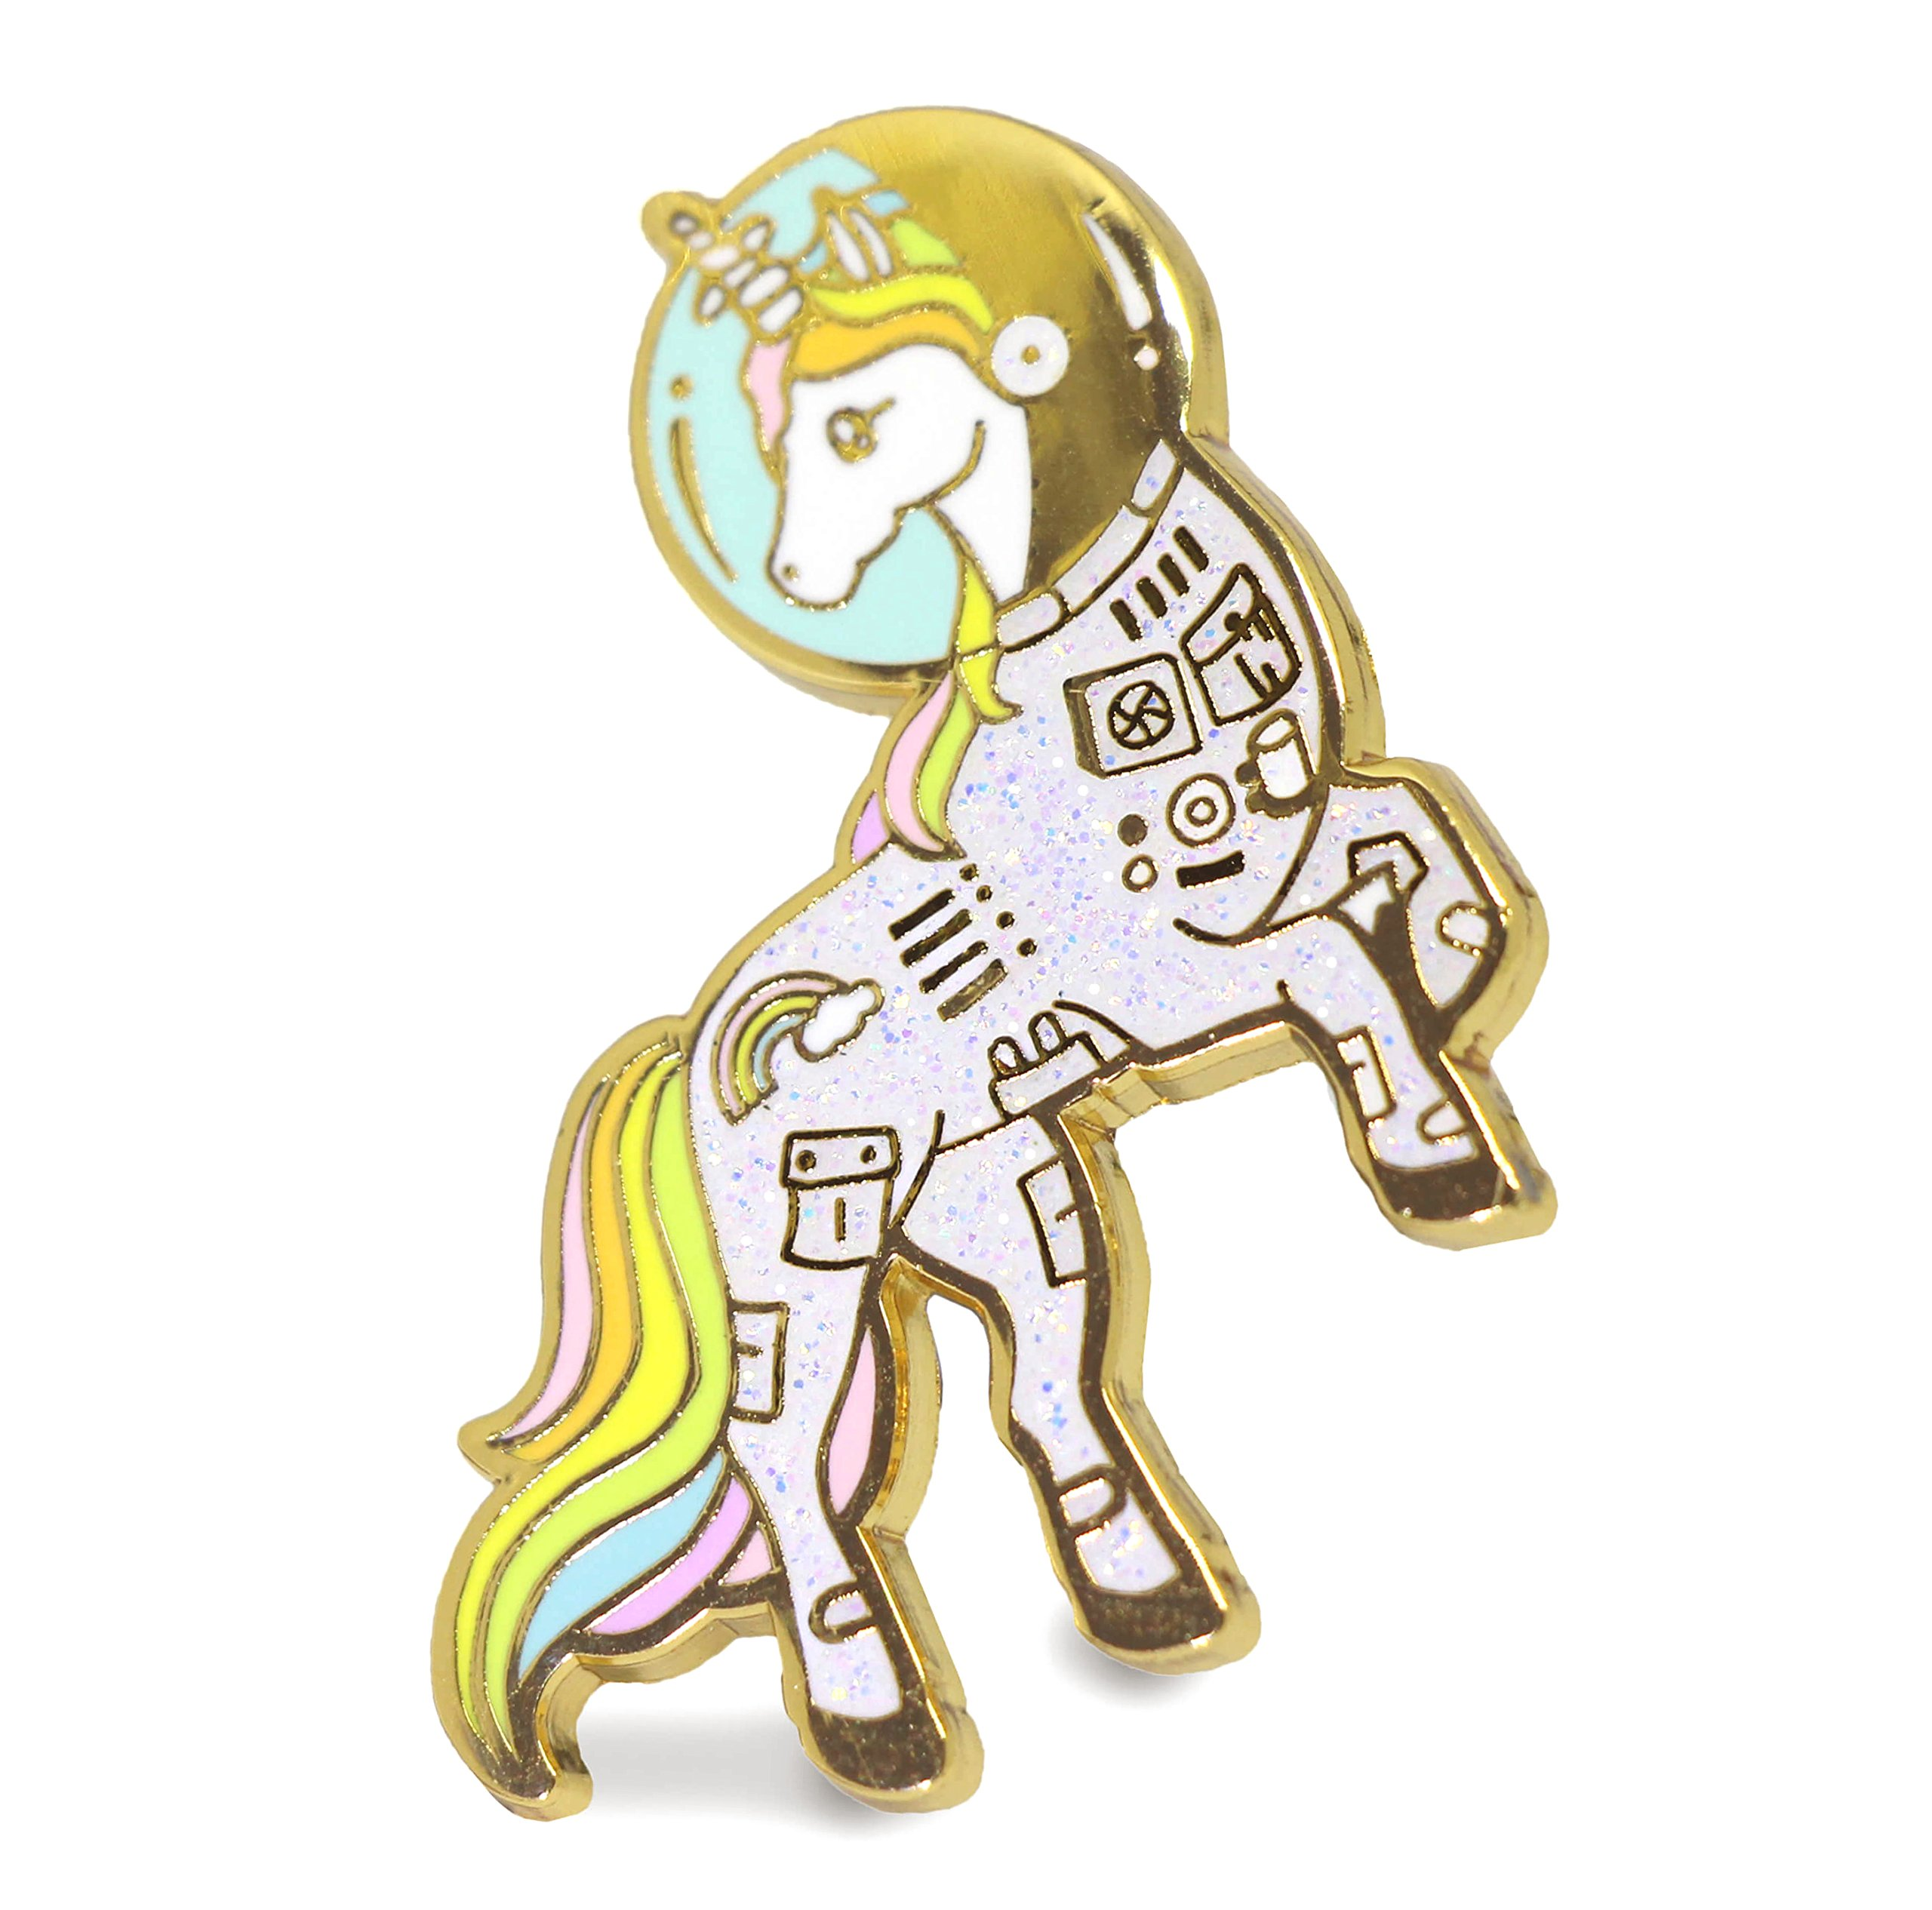 Unicorn Enamel Pin Astronaut Space Unicorn In a Suit Colorful Lapel Pin 3